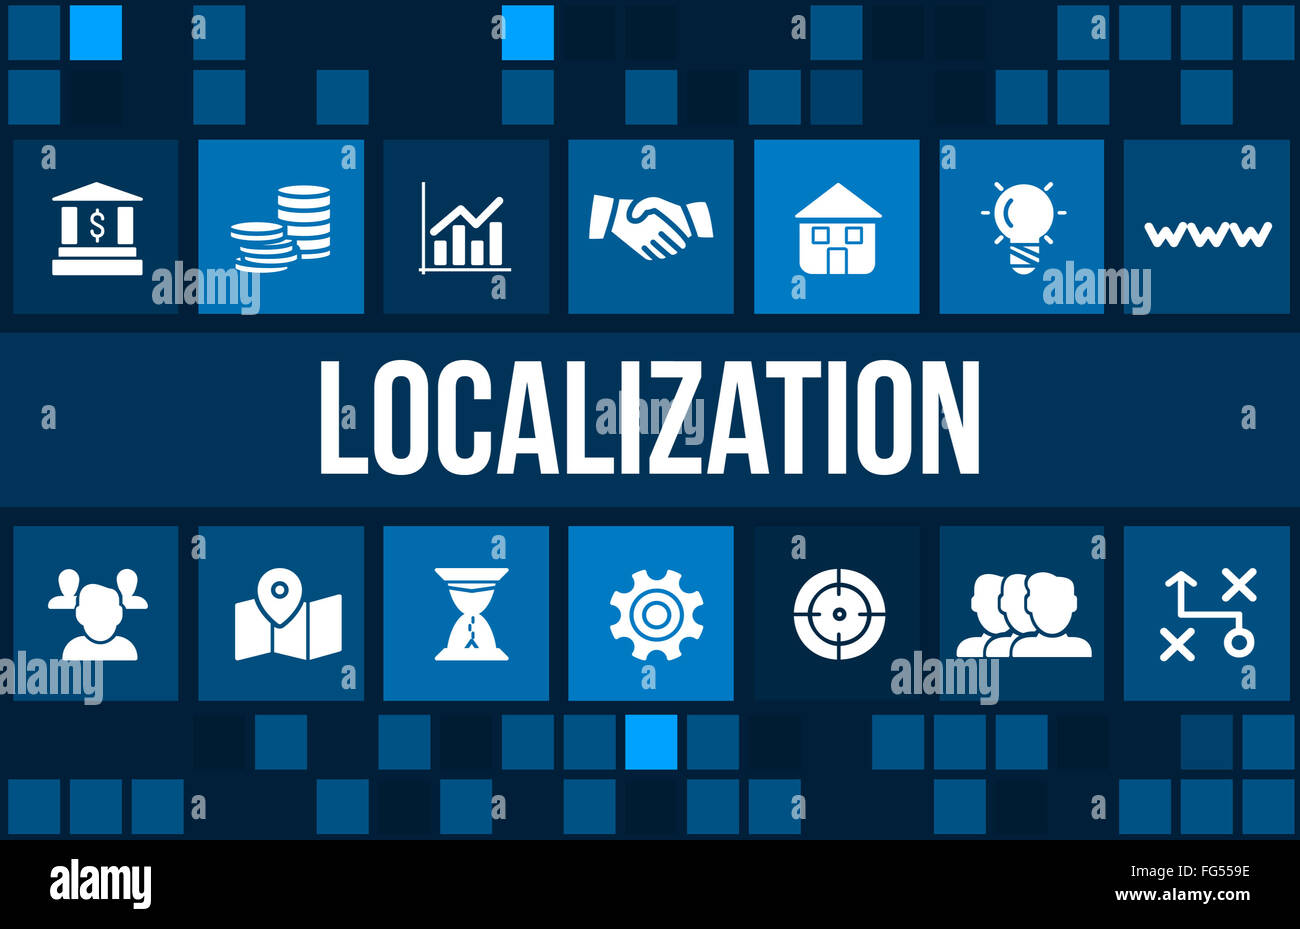 Localization concept image with business icons and copyspace - Stock Image